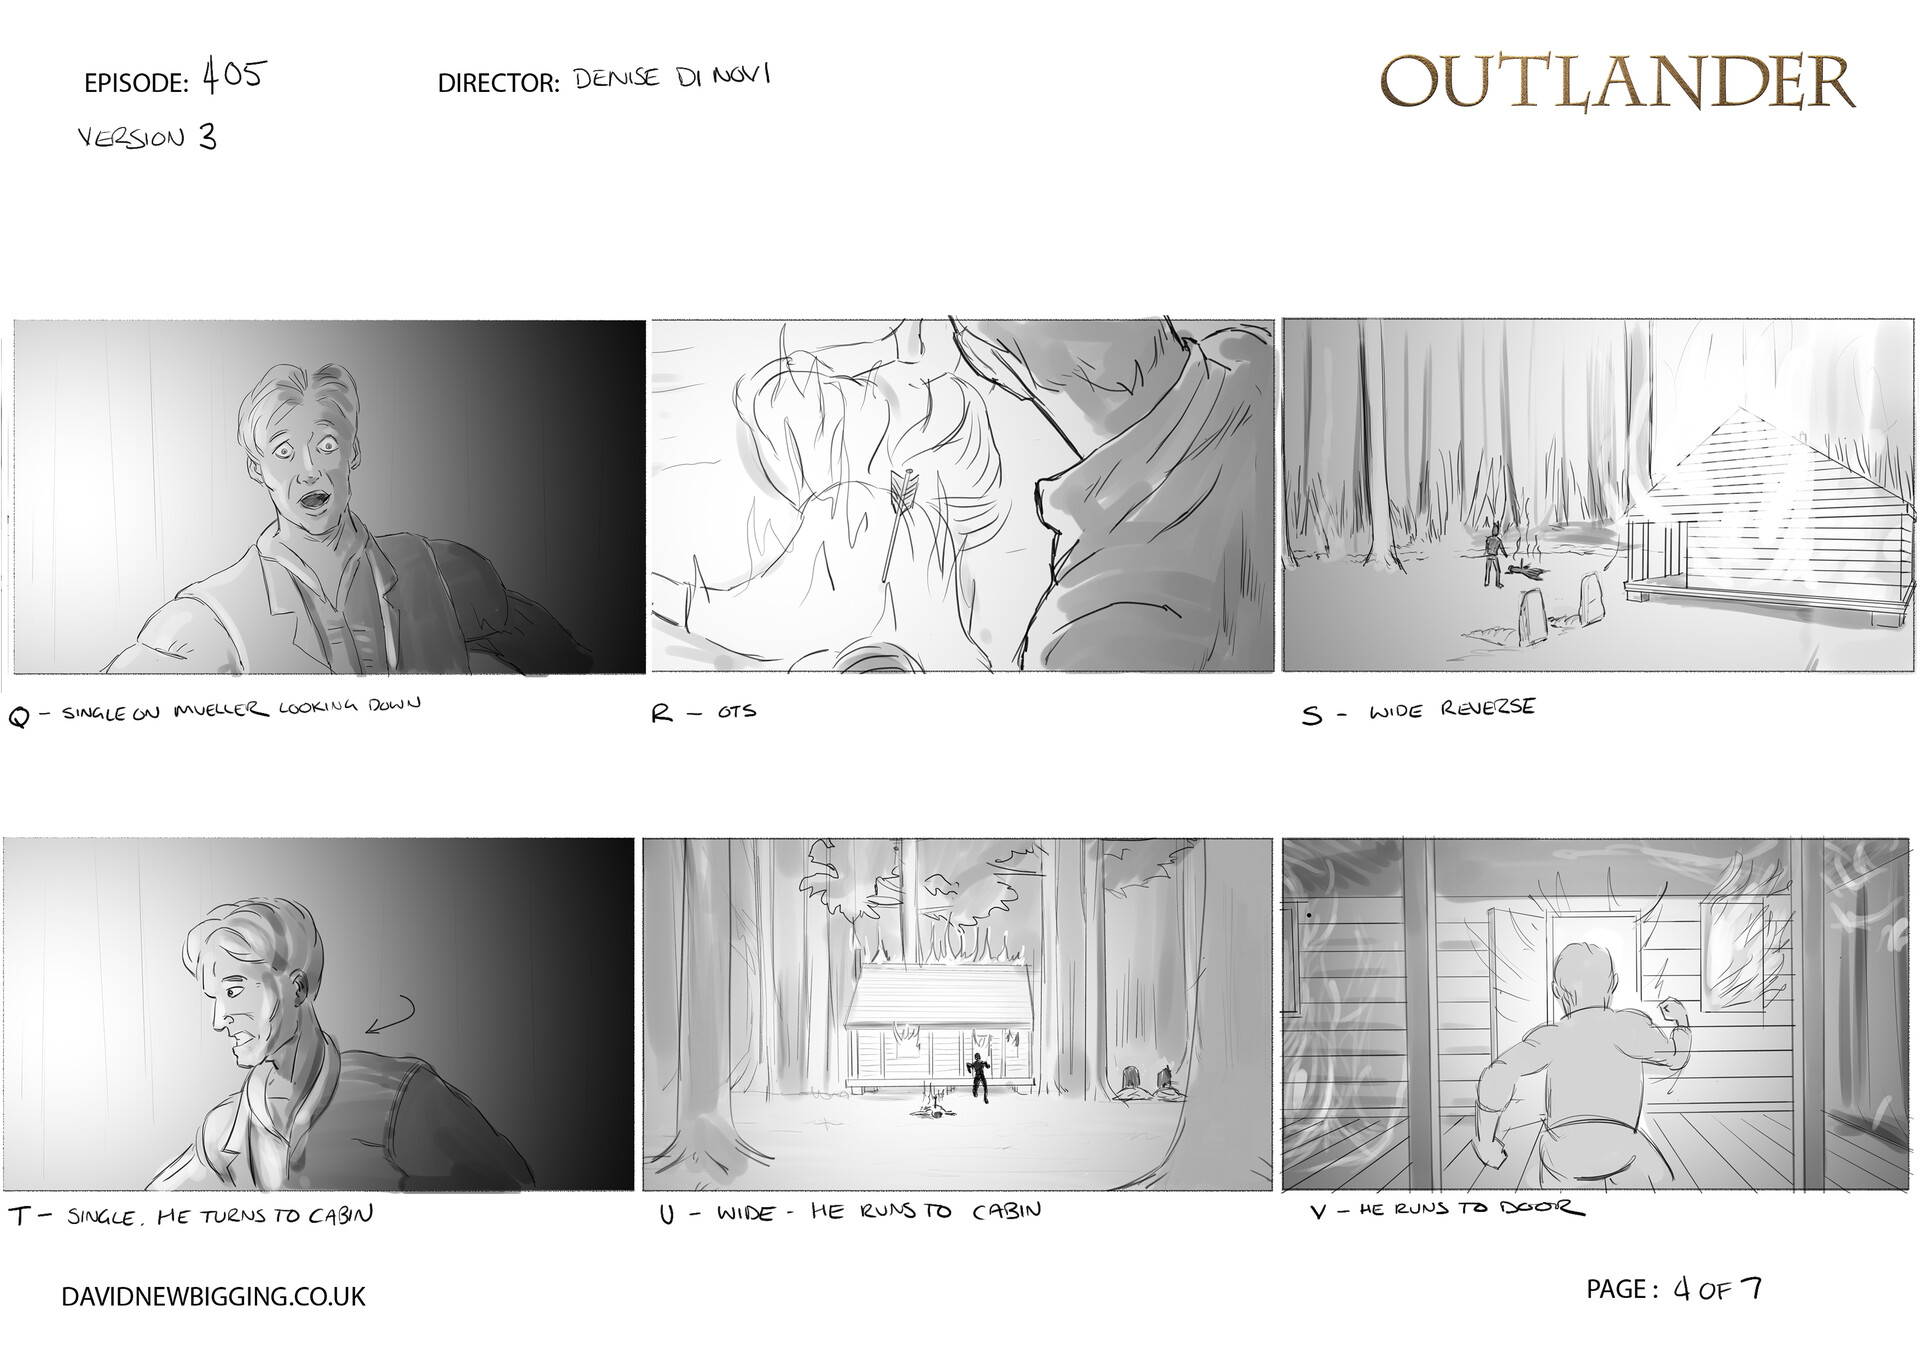 David newbigging outlander 405 cabin burning sequence storyboards version 3 4